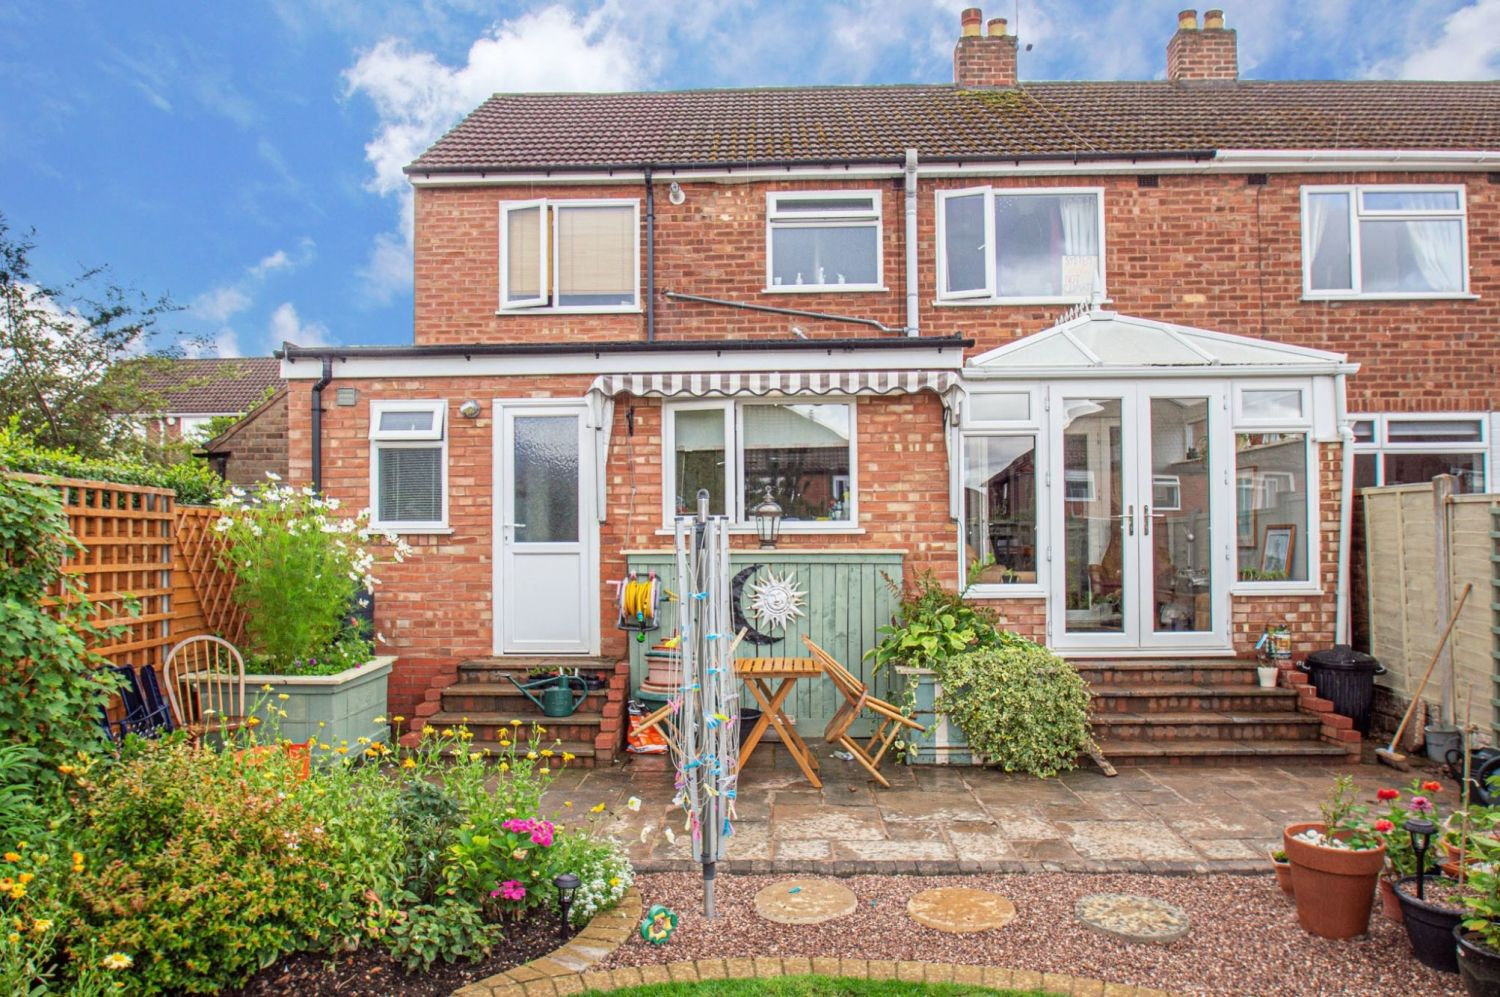 4 bed semi-detached for sale in Wheatcroft Close, Halesowen 18